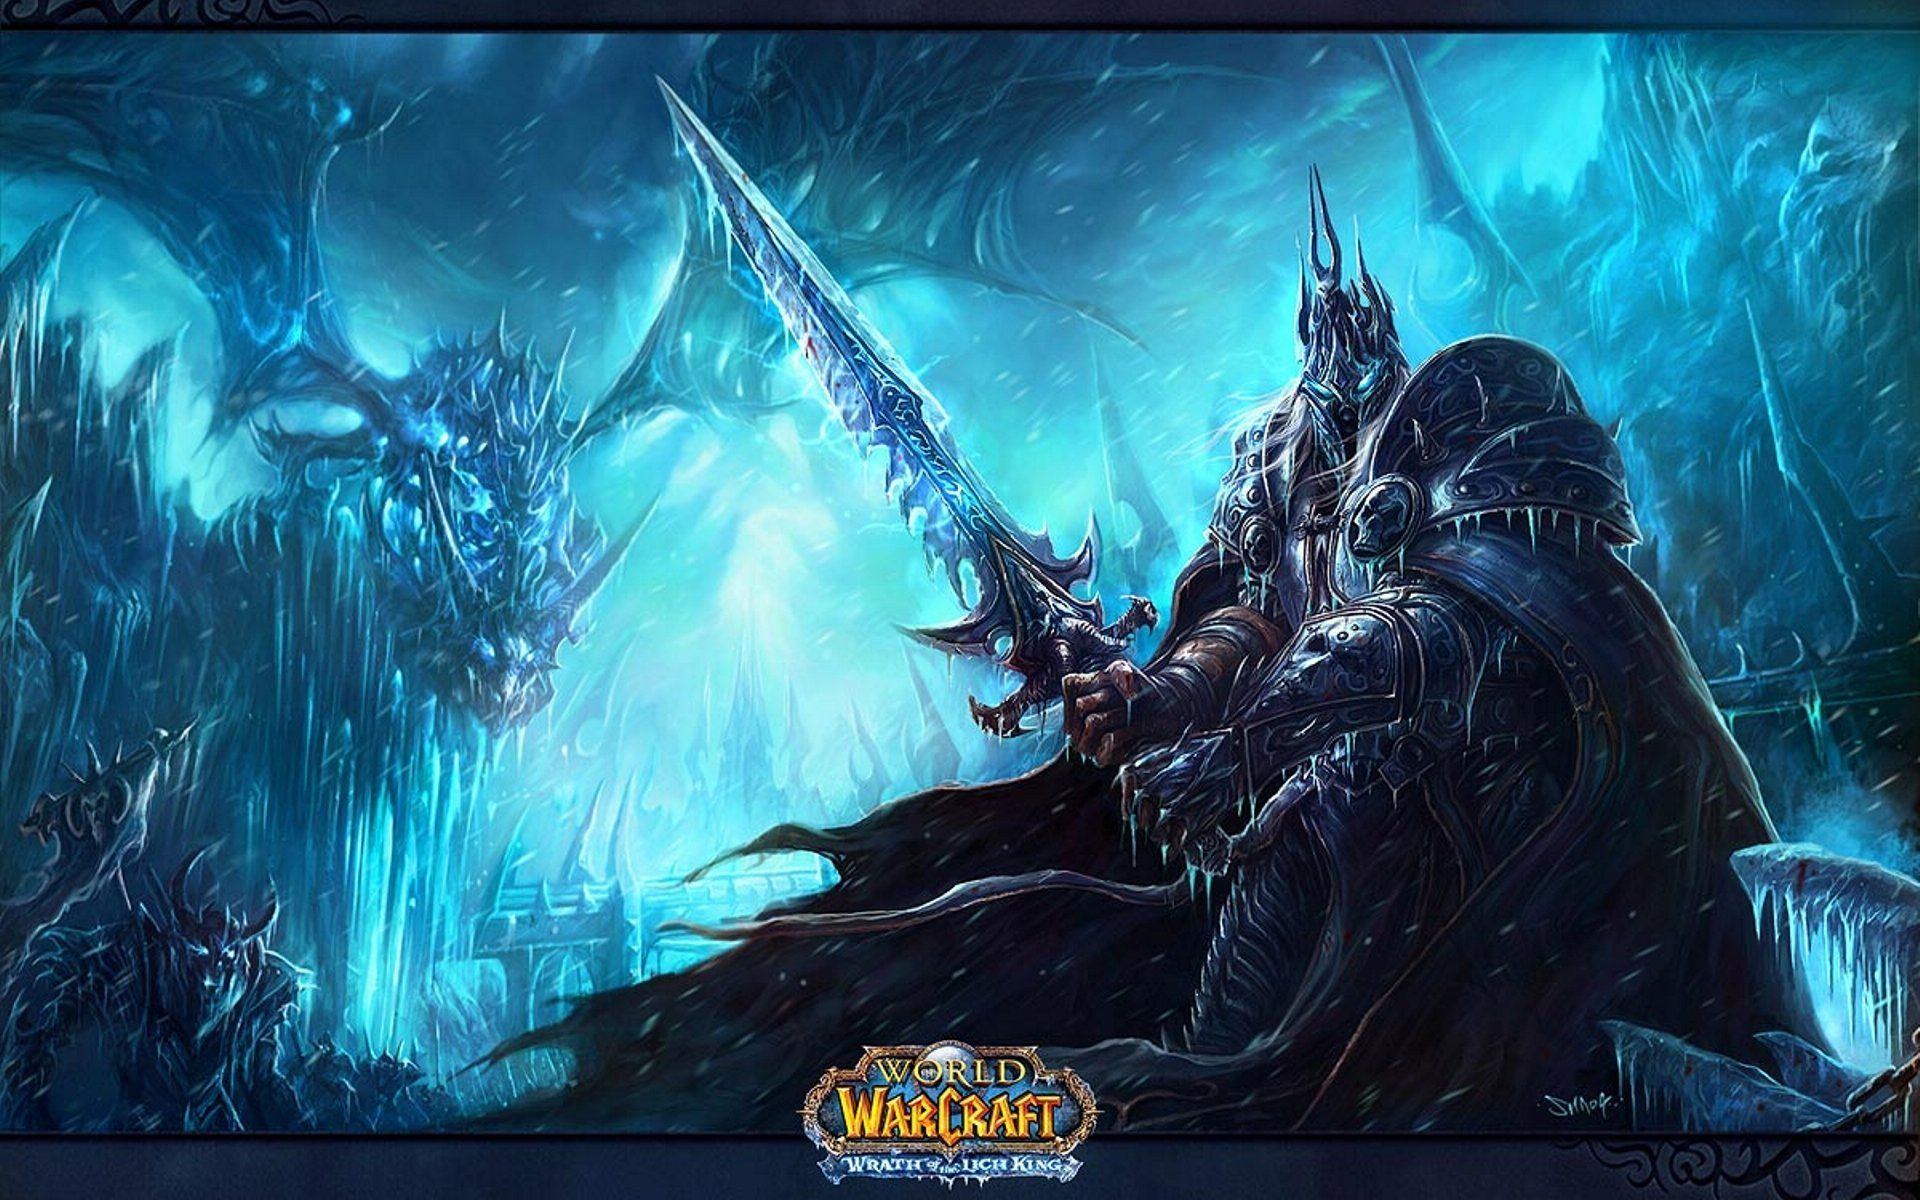 World Of Warcraft Rise Of The Lich King Wallpapers Video Game